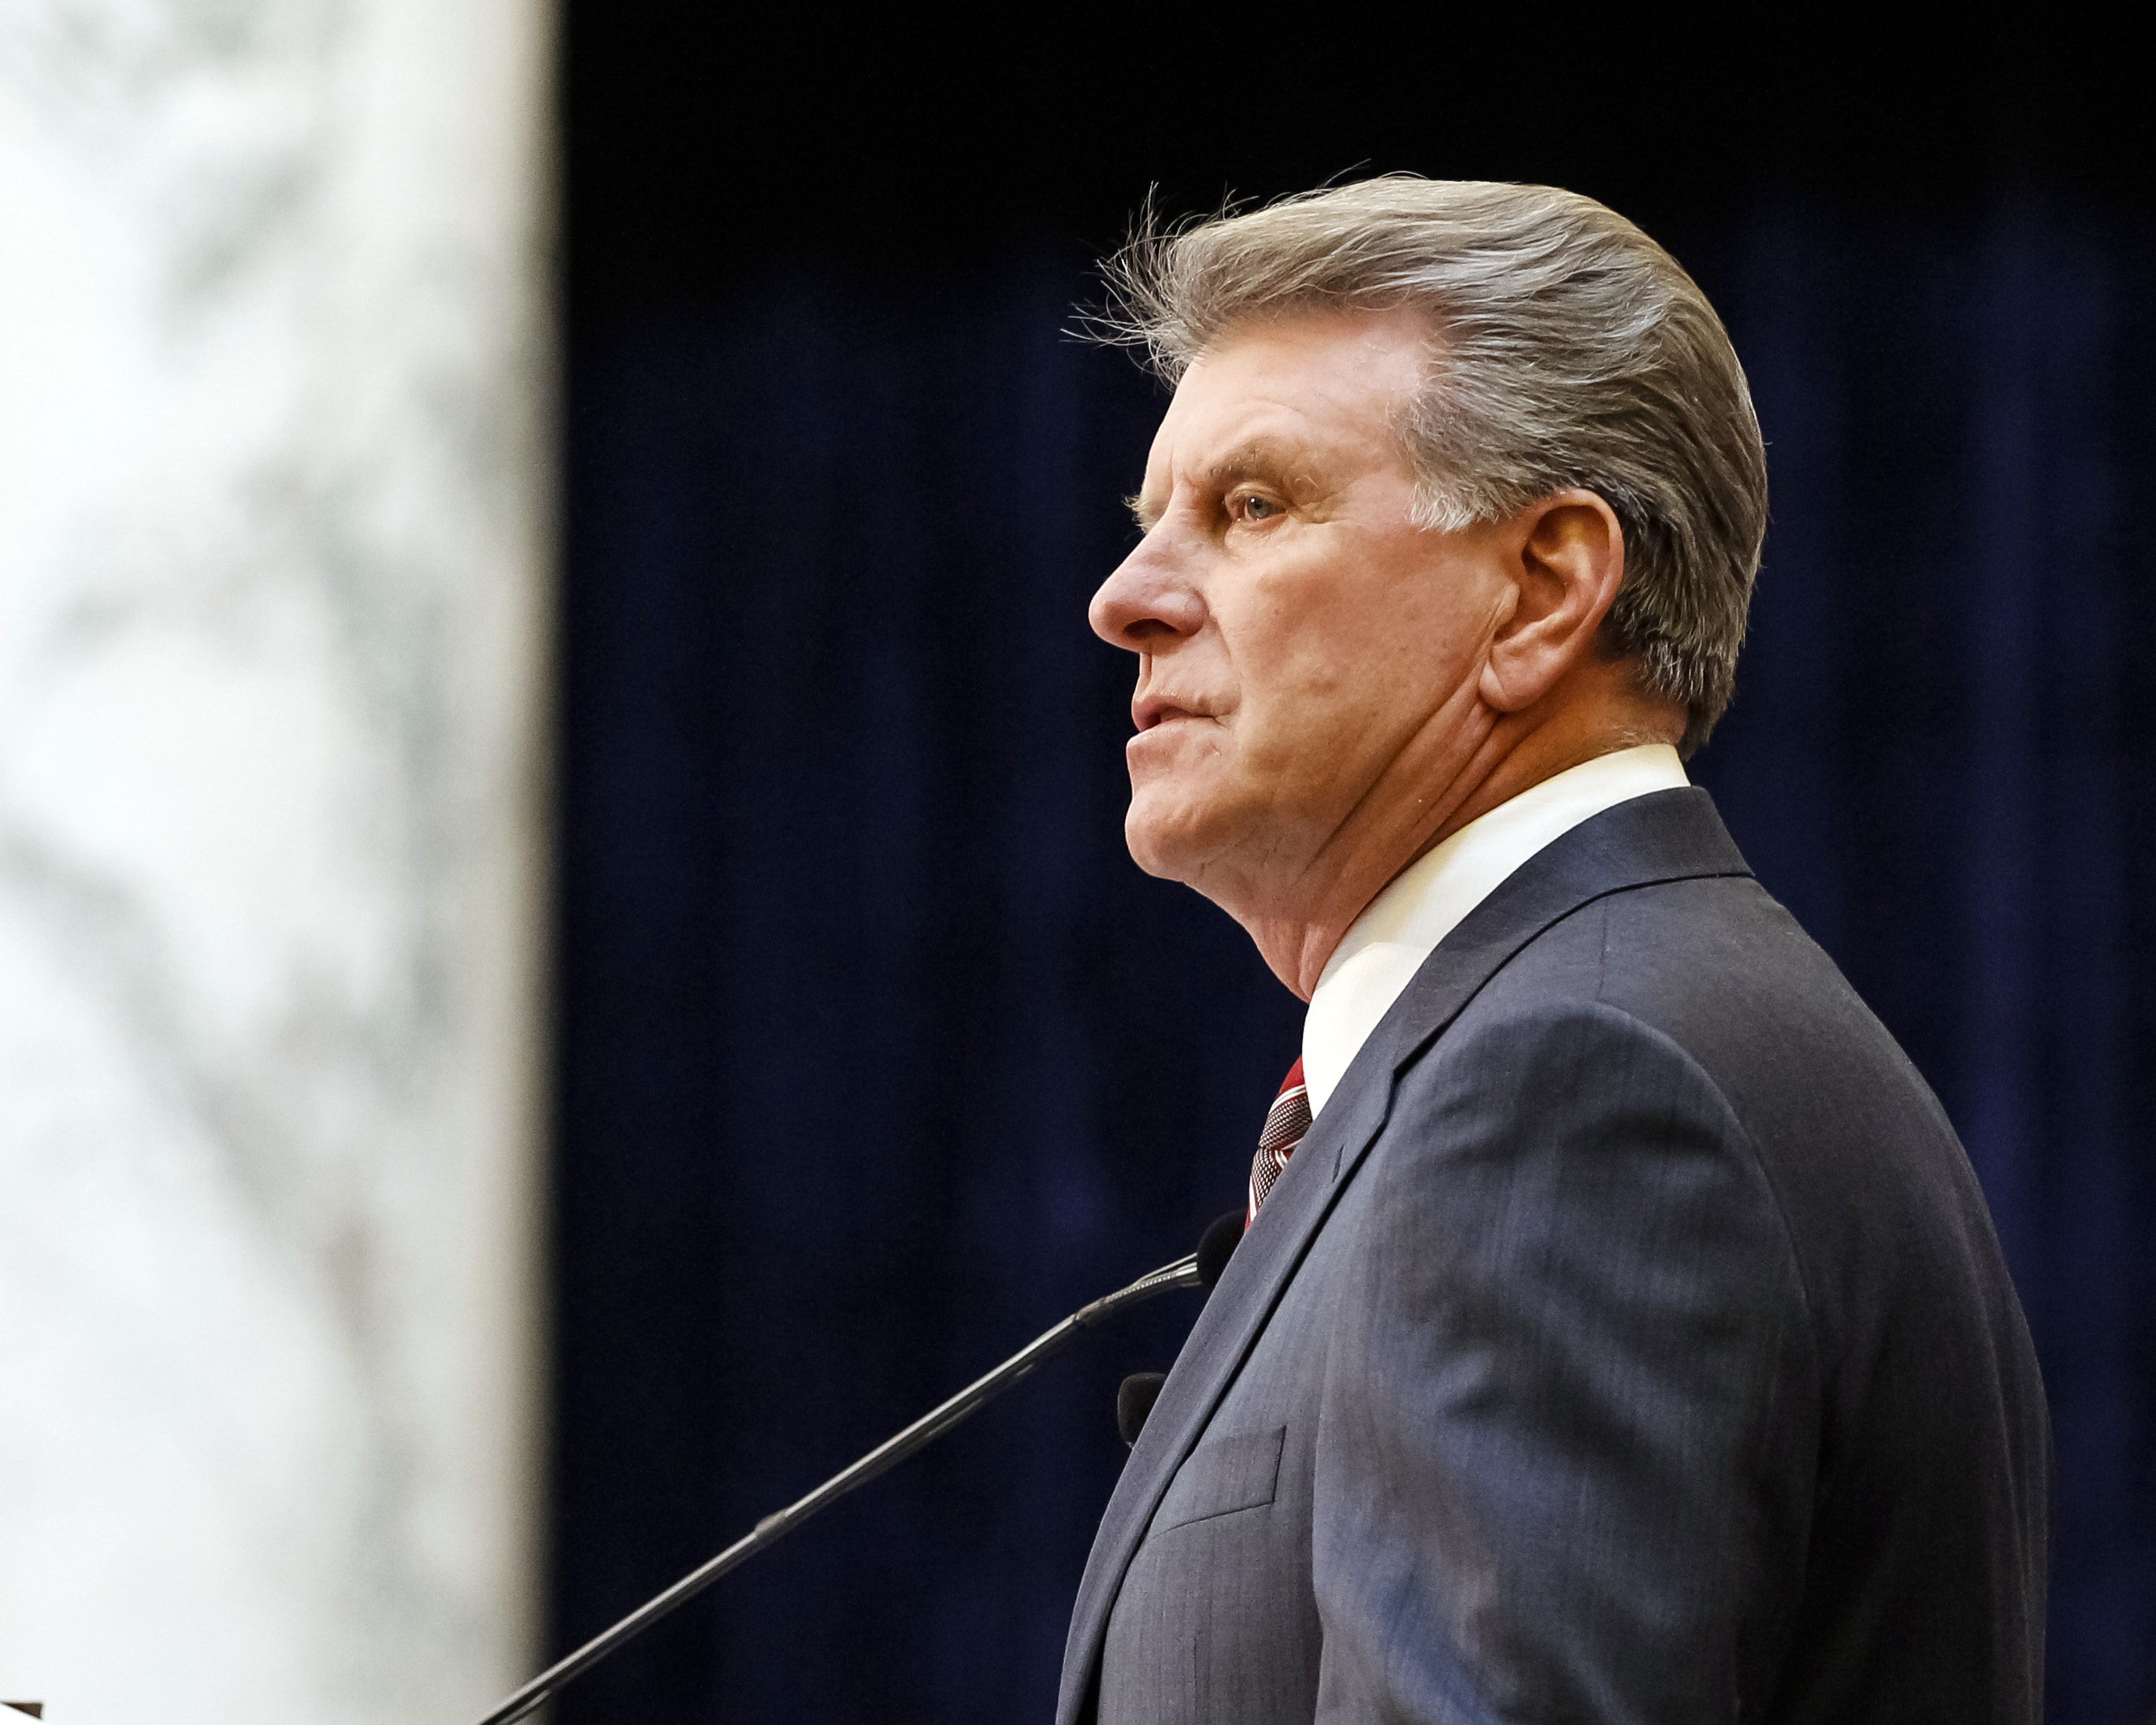 Idaho Gov. C.L.  Butch  Otter delivers his State of the State address inside the house chambers at the state Capitol building on Monday, Jan. 6, 2014, in Boise, Idaho.